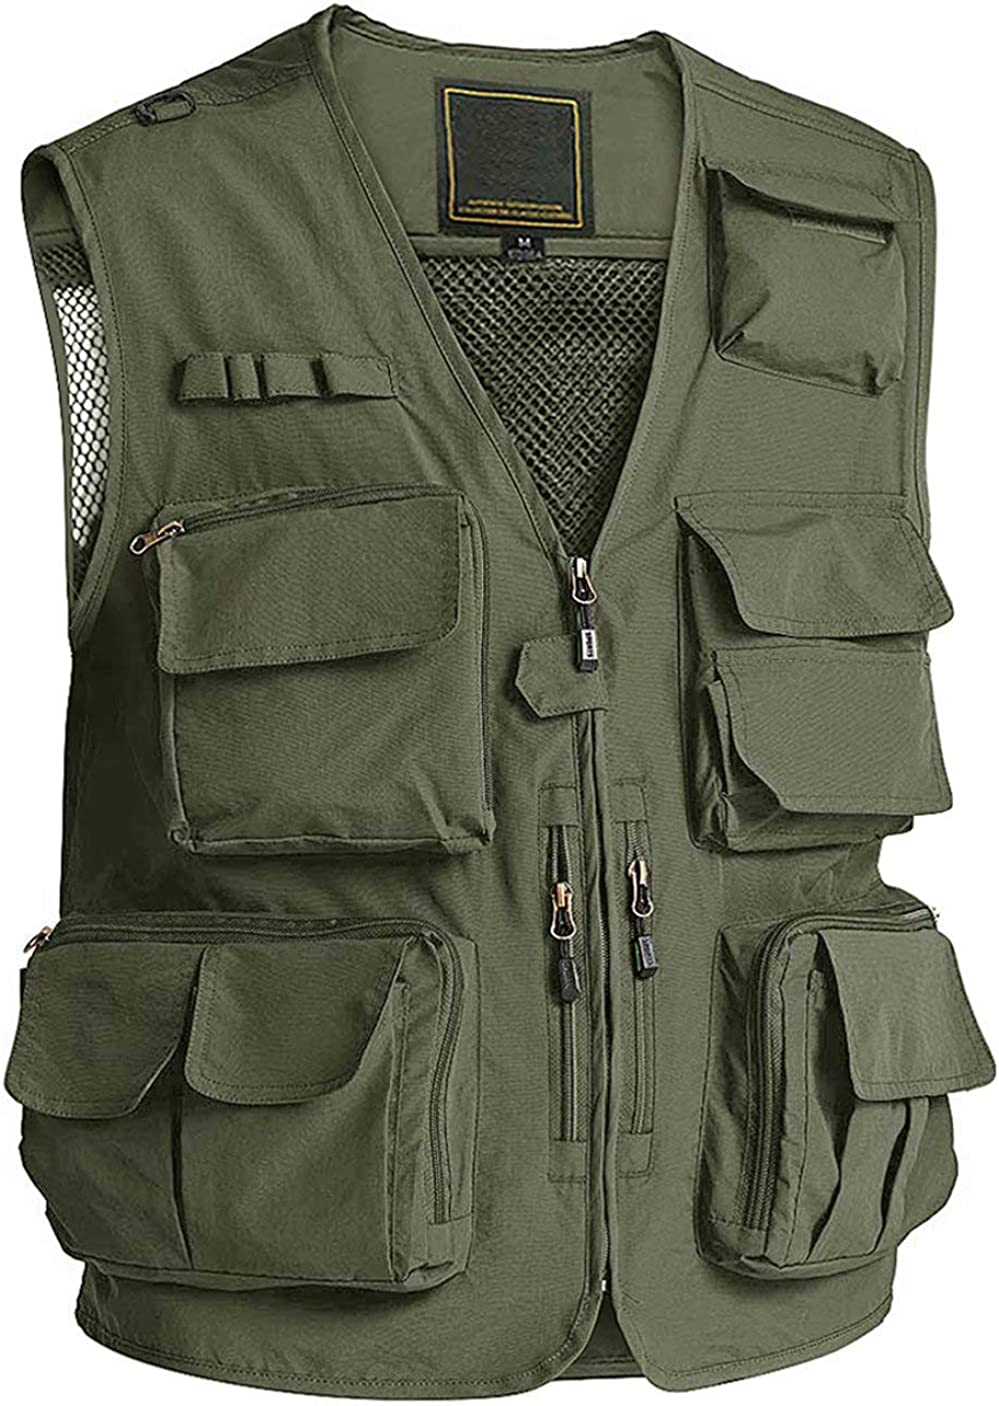 MAGCOMSEN Men's Outerwear Vests Casual P Work Multi Vest Outdoor Raleigh Mall Sales of SALE items from new works